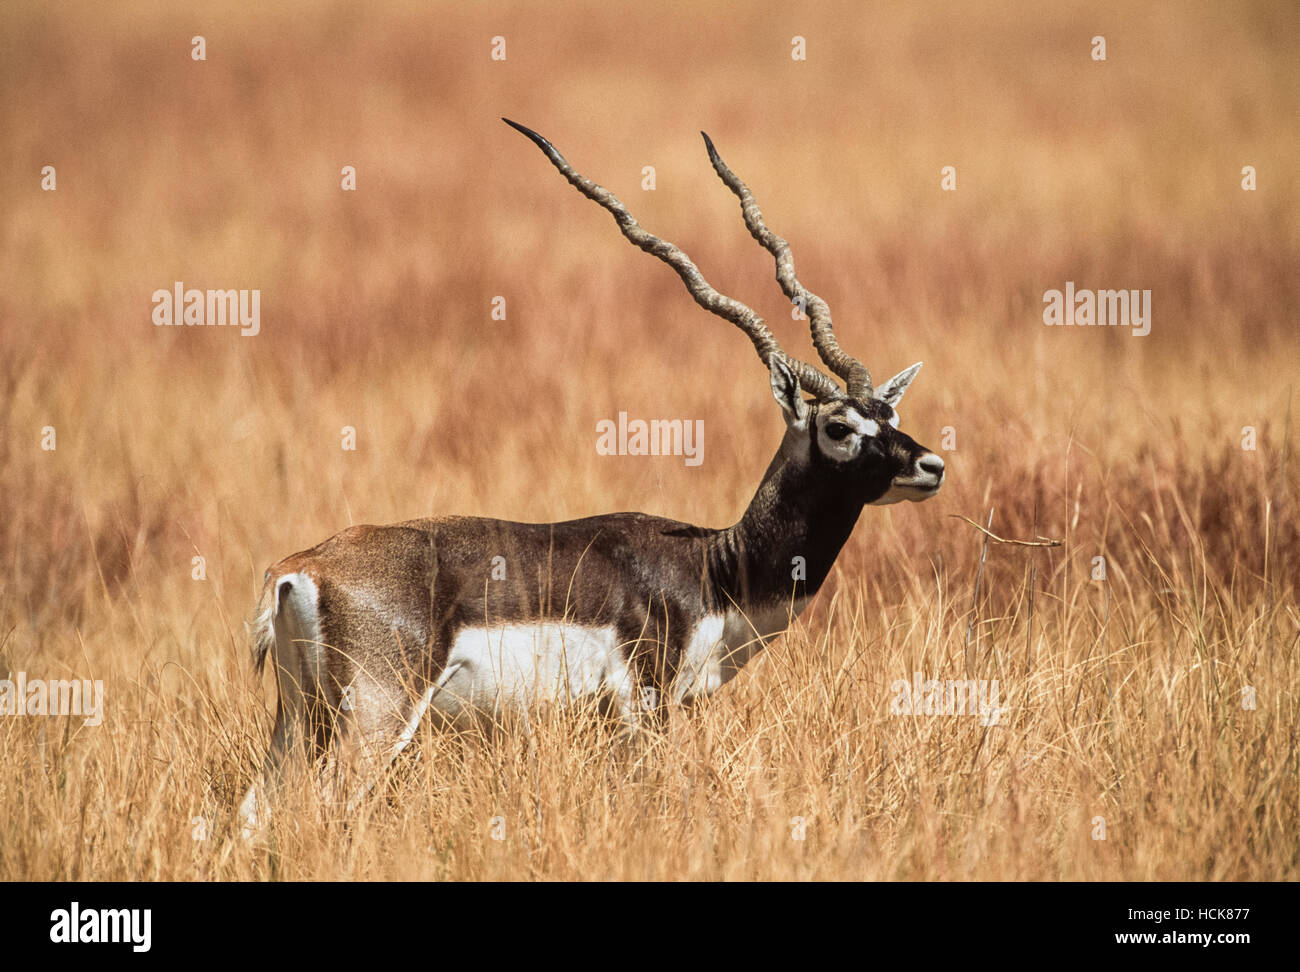 Indian Blackbuck, (Antilope cervicapra), adult male on grassland plains, Blackbuck National Park,Velavadar,Gujarat,India - Stock Image